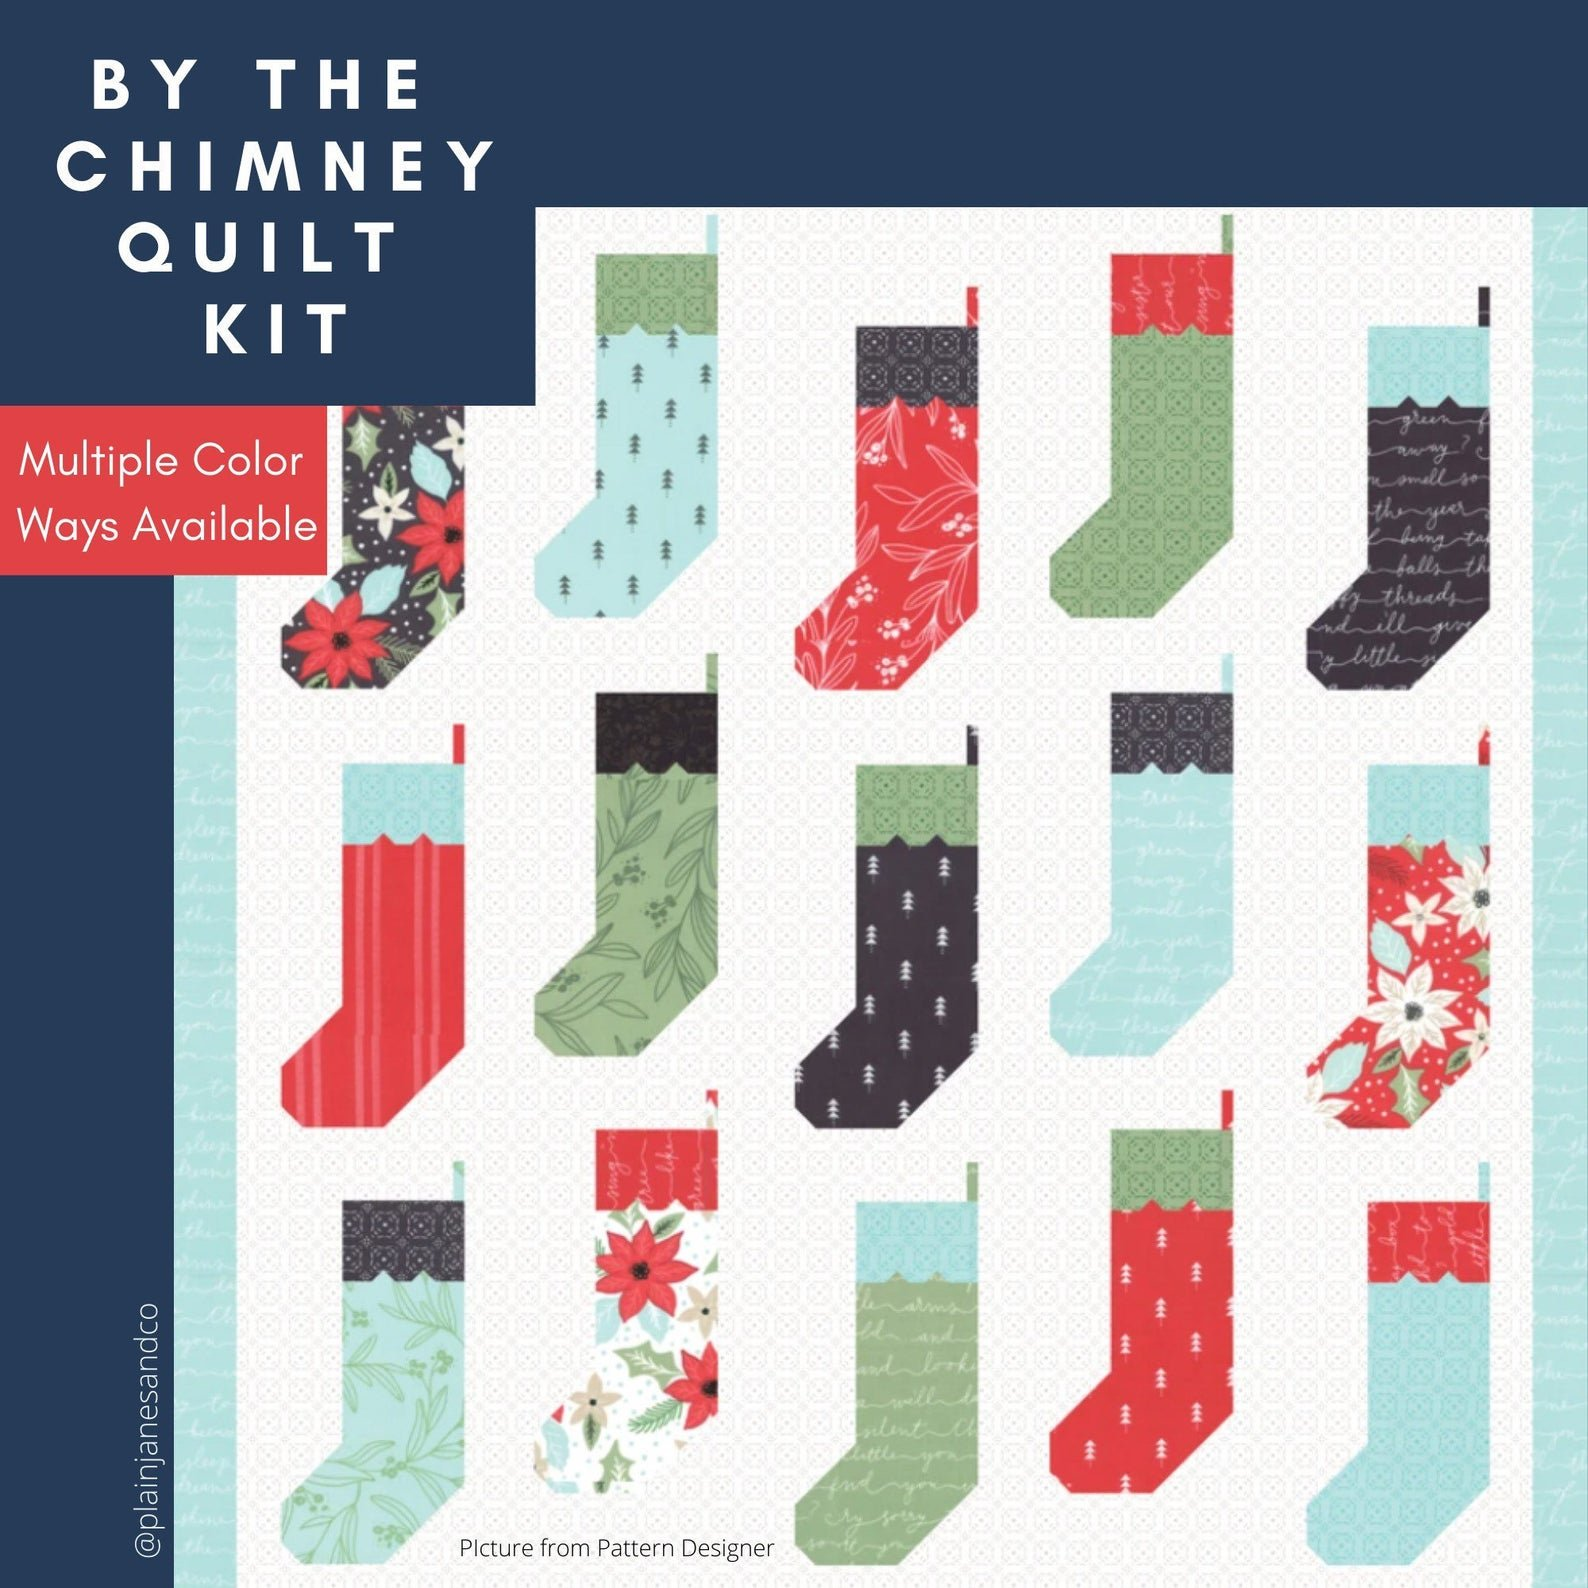 By the Chimney Quilt Kit